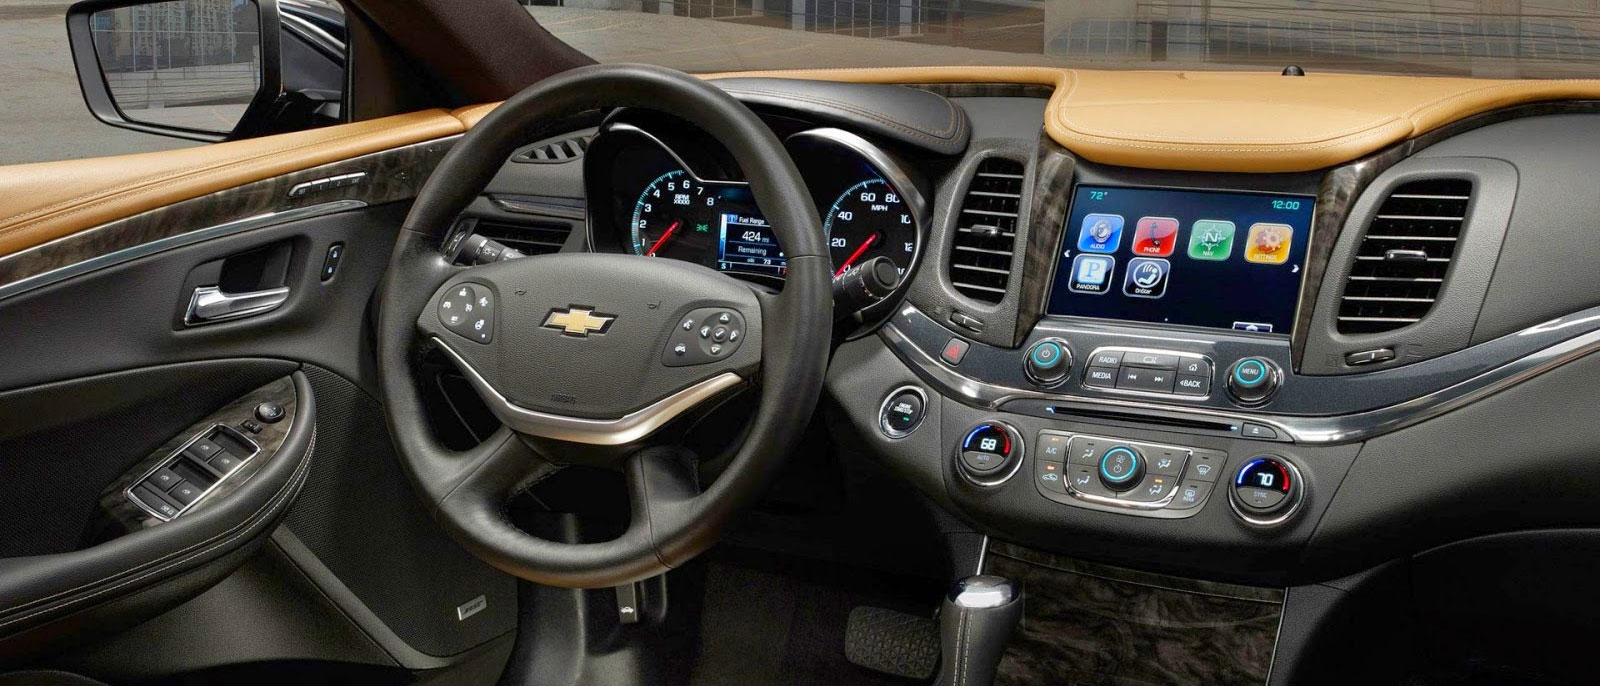 Aaa Cost Per Mile >> How Many Miles Per Gallon Is A 2015 Chevrolet Impala | Autos Post